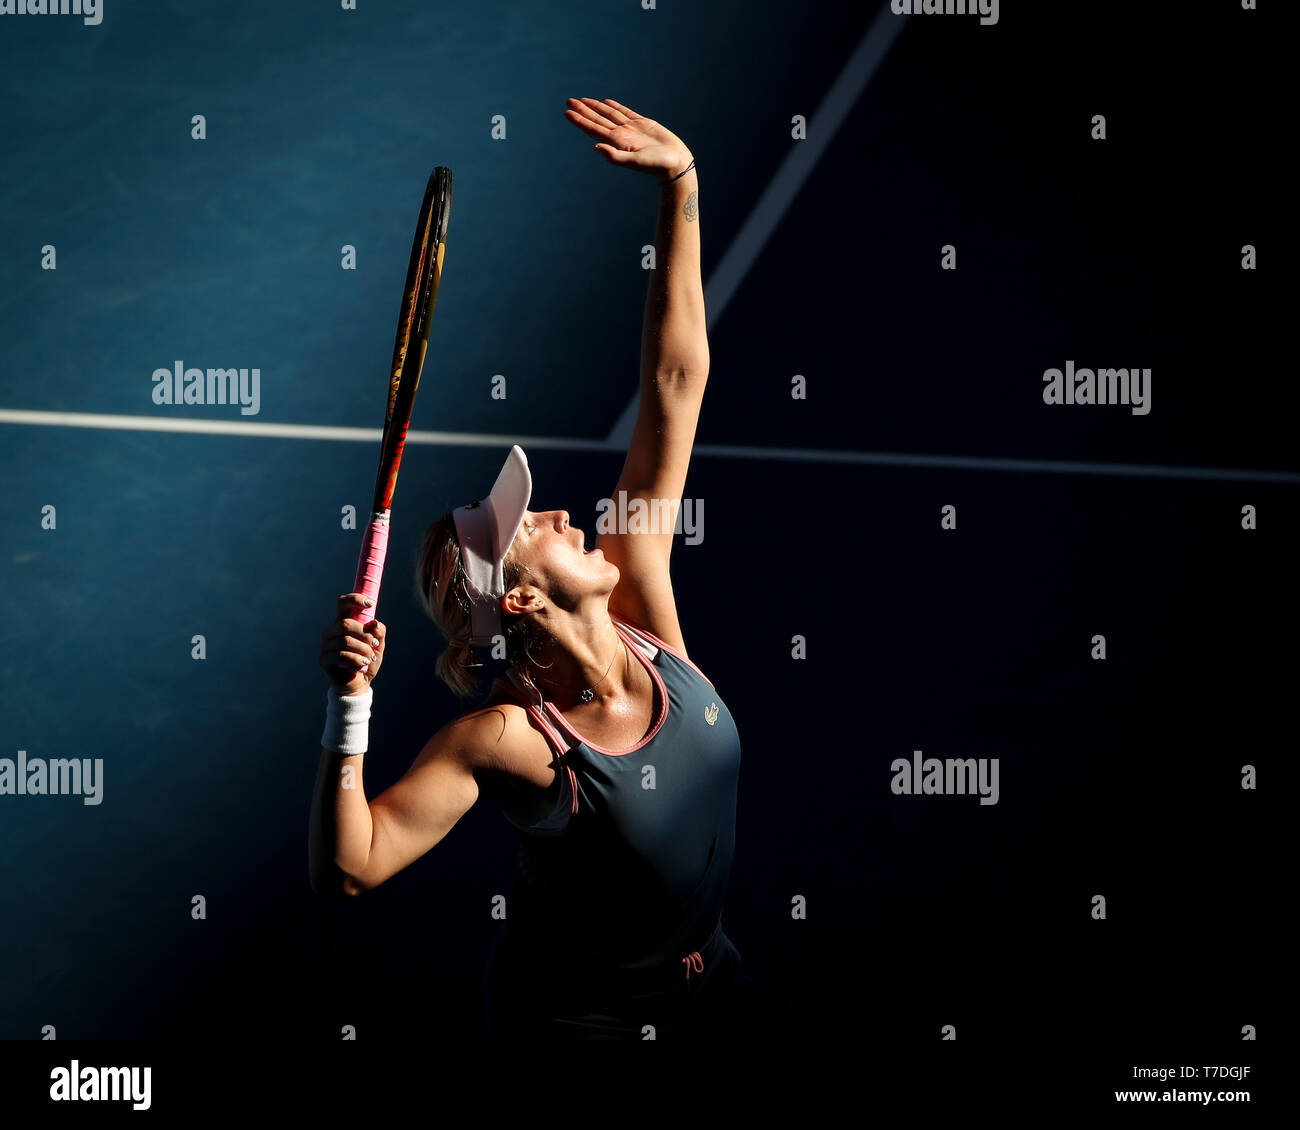 Russian tennis player Anastasia Pavlyuchenkova serving in Australian Open 2019 tennis tournament, Melbourne Park, Melbourne, Victoria, Australia - Stock Image